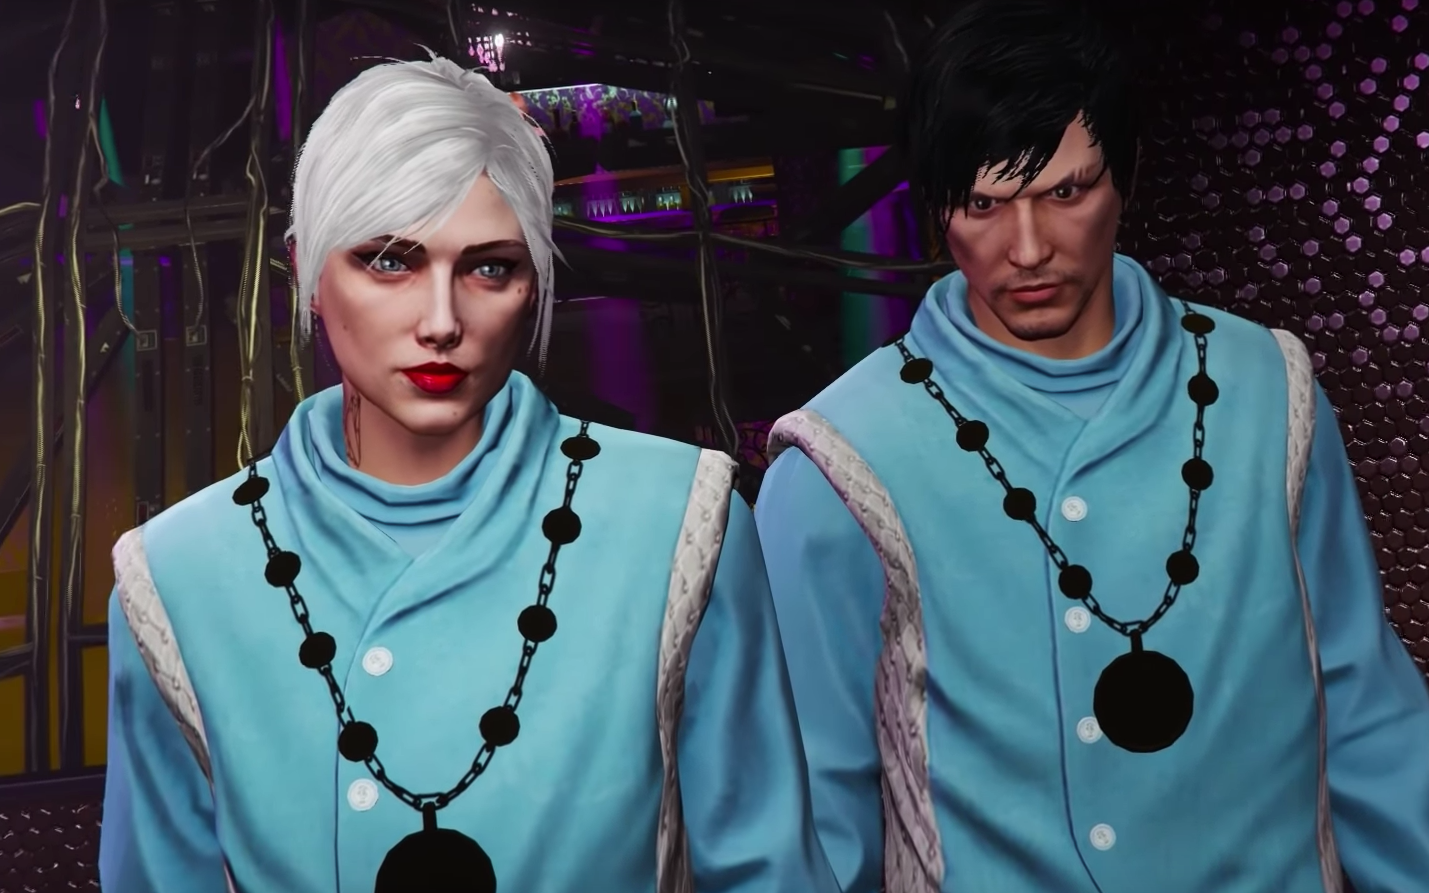 GTA Online Players Find Easter Egg By Tipping Bathroom Attendant At Least 500 Times